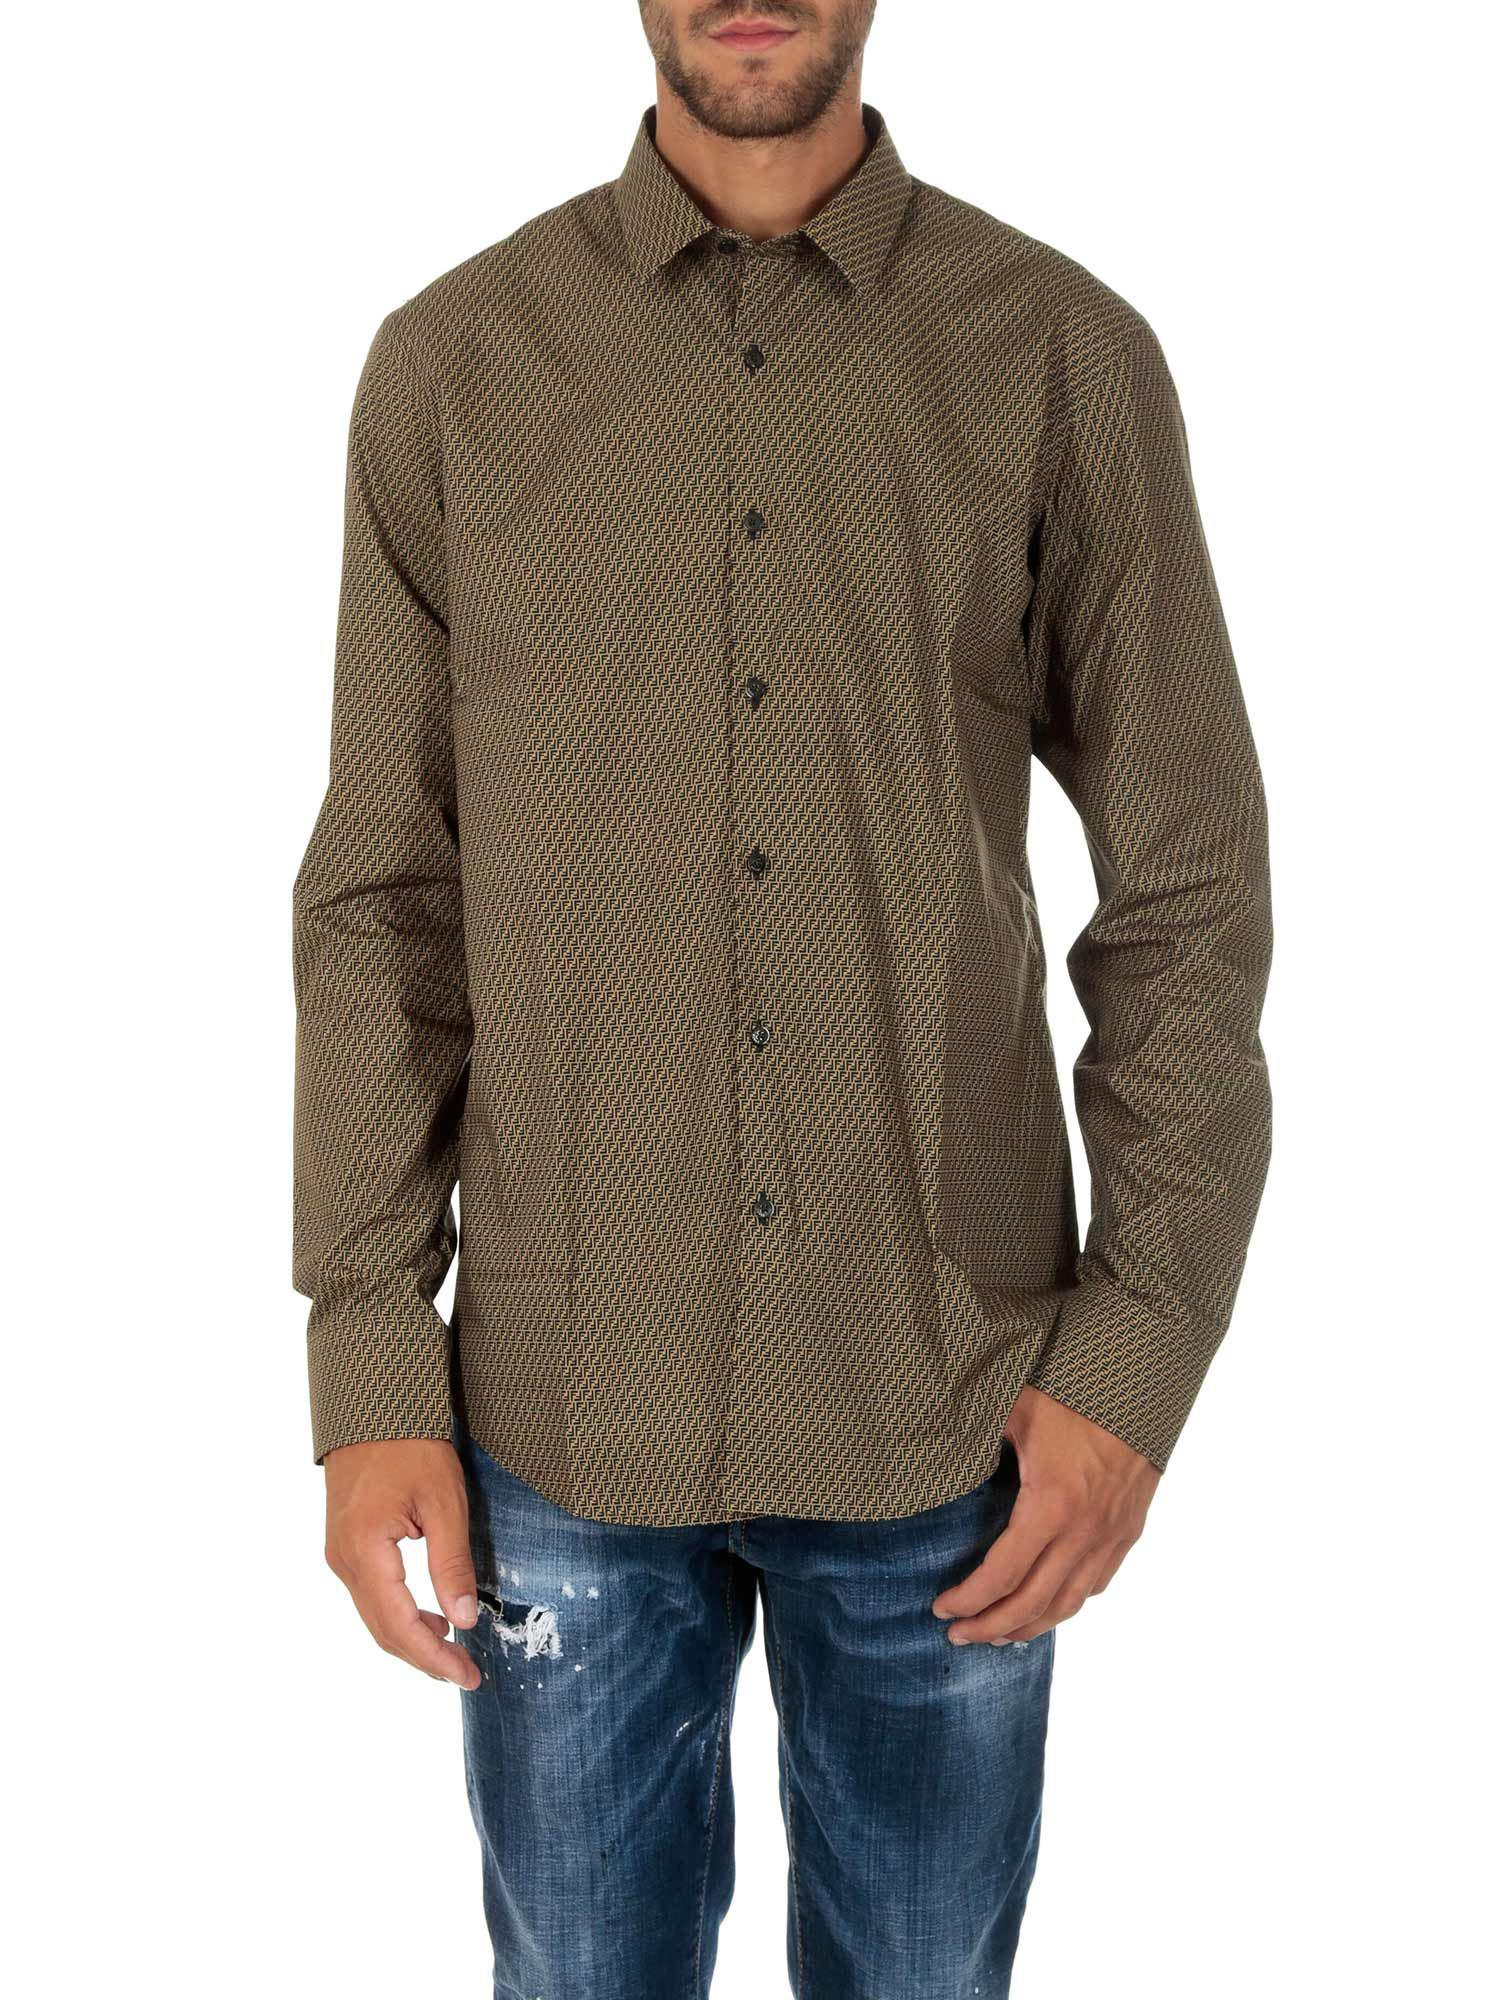 c8e810f4e0ee Fendi Beige And Brown Monogram Cotton Shirt in Natural for Men - Lyst